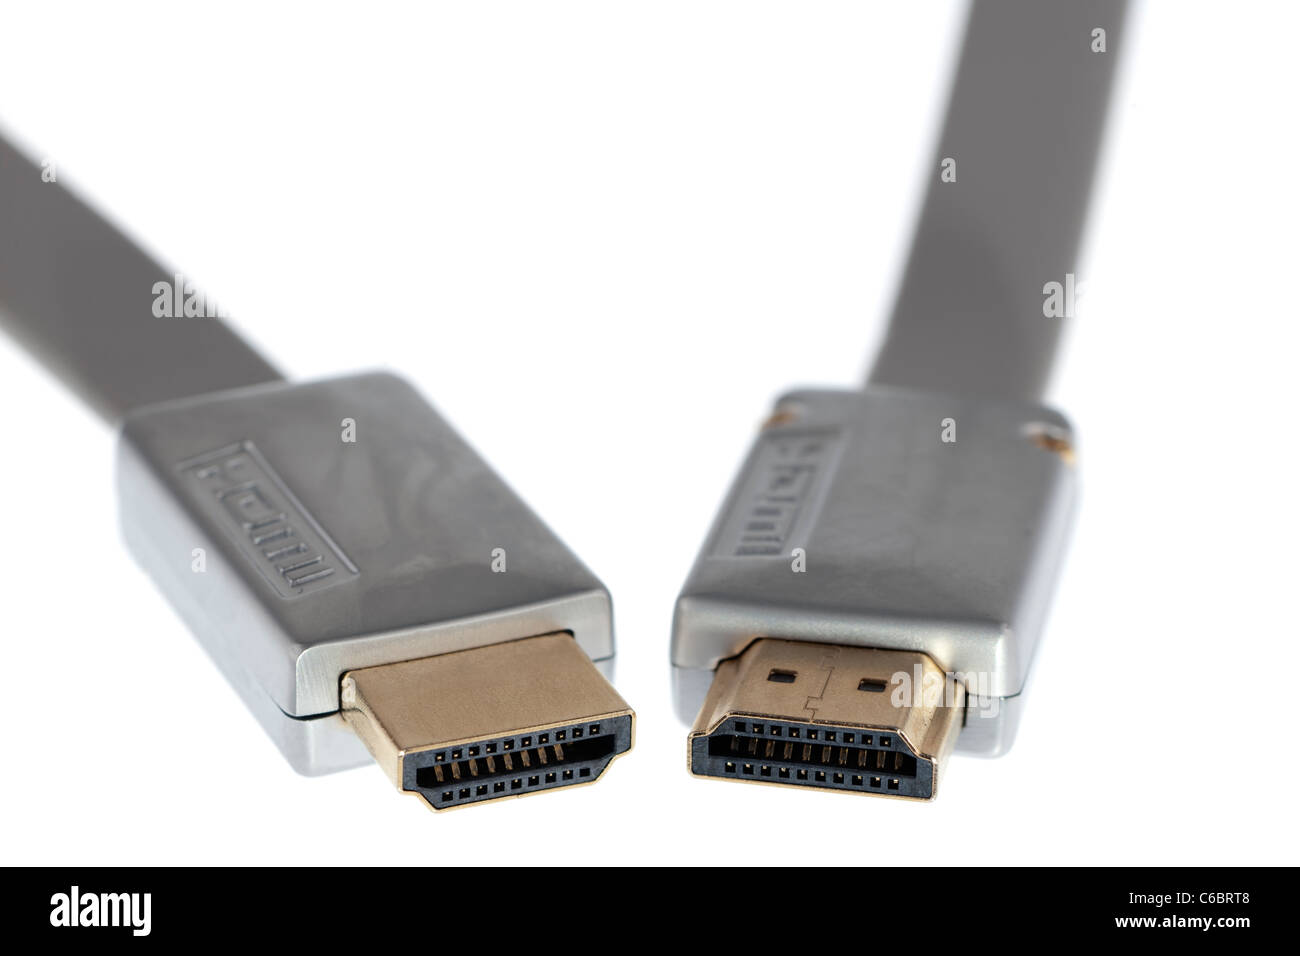 Flat hdmi to hdmi digital cable - Stock Image